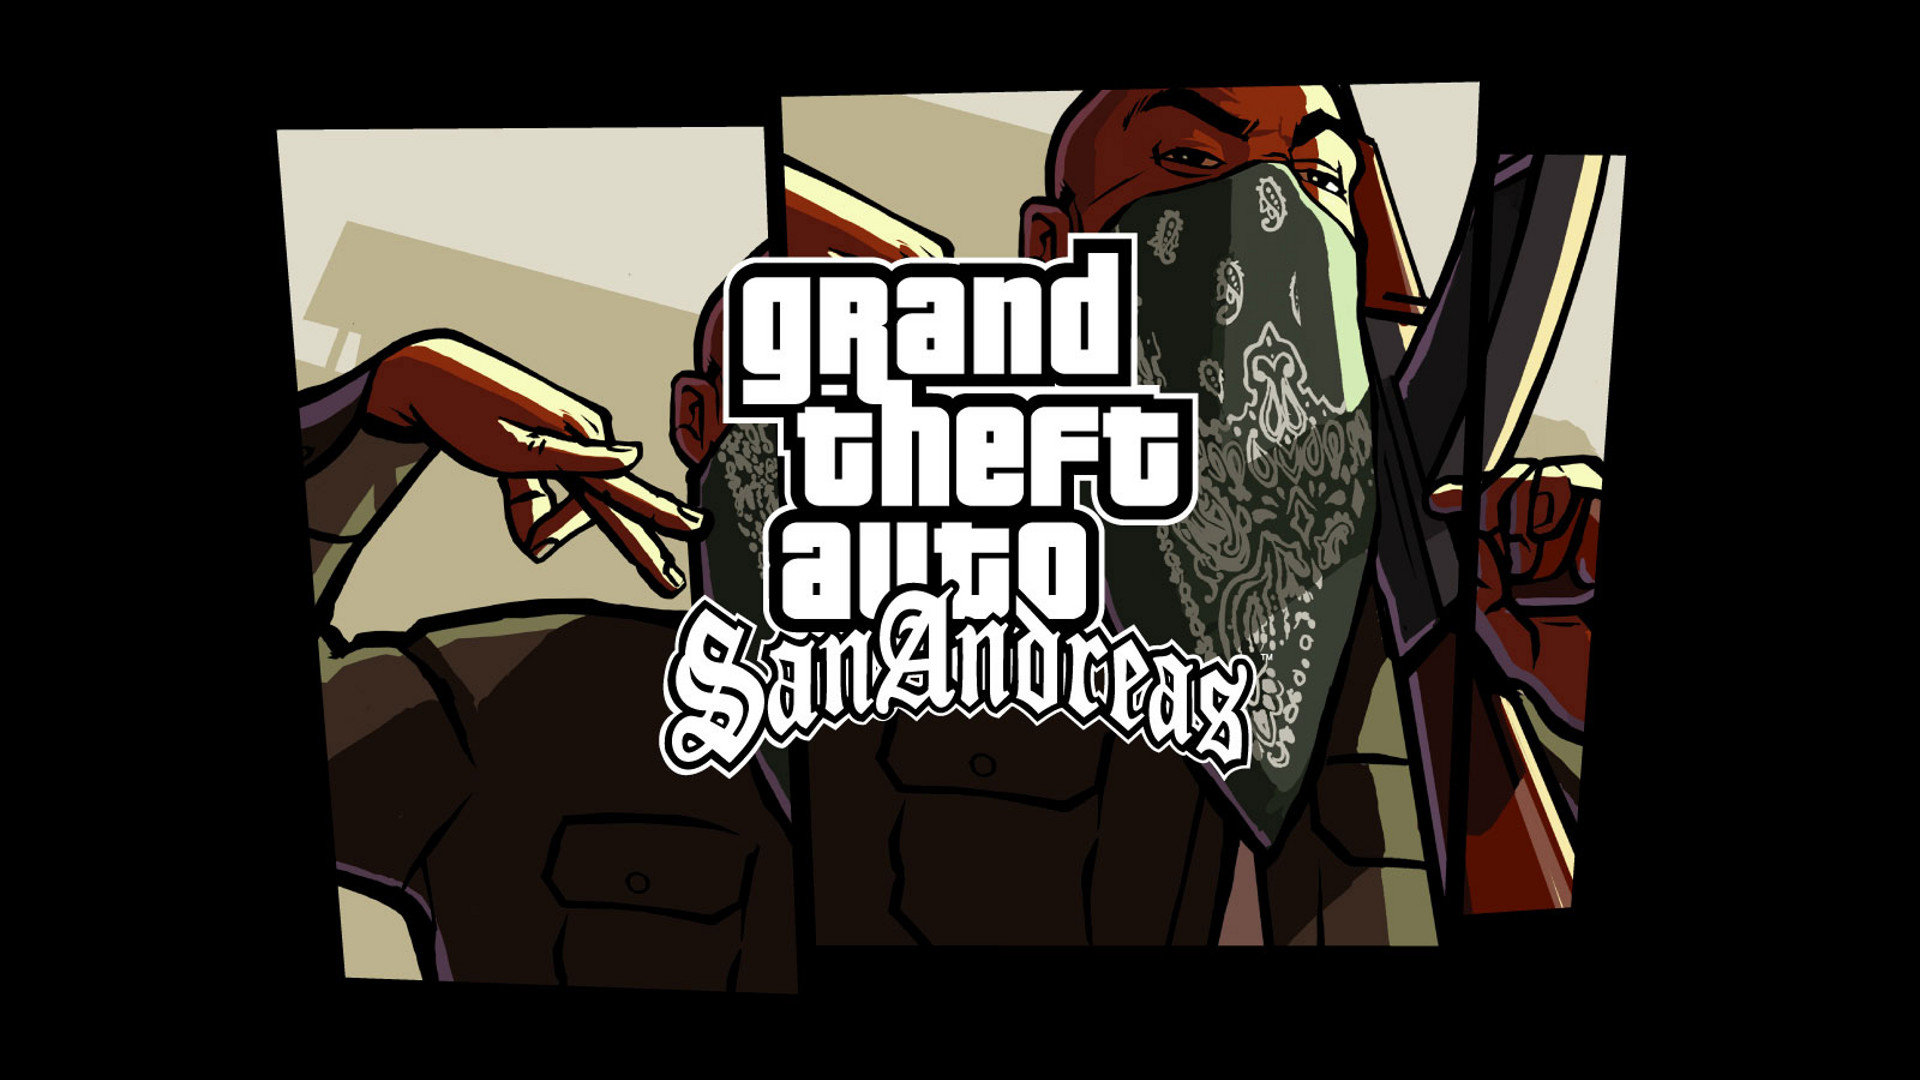 Awesome Grand Theft Auto - Gta San Andreas Wallpaper 4k , HD Wallpaper & Backgrounds